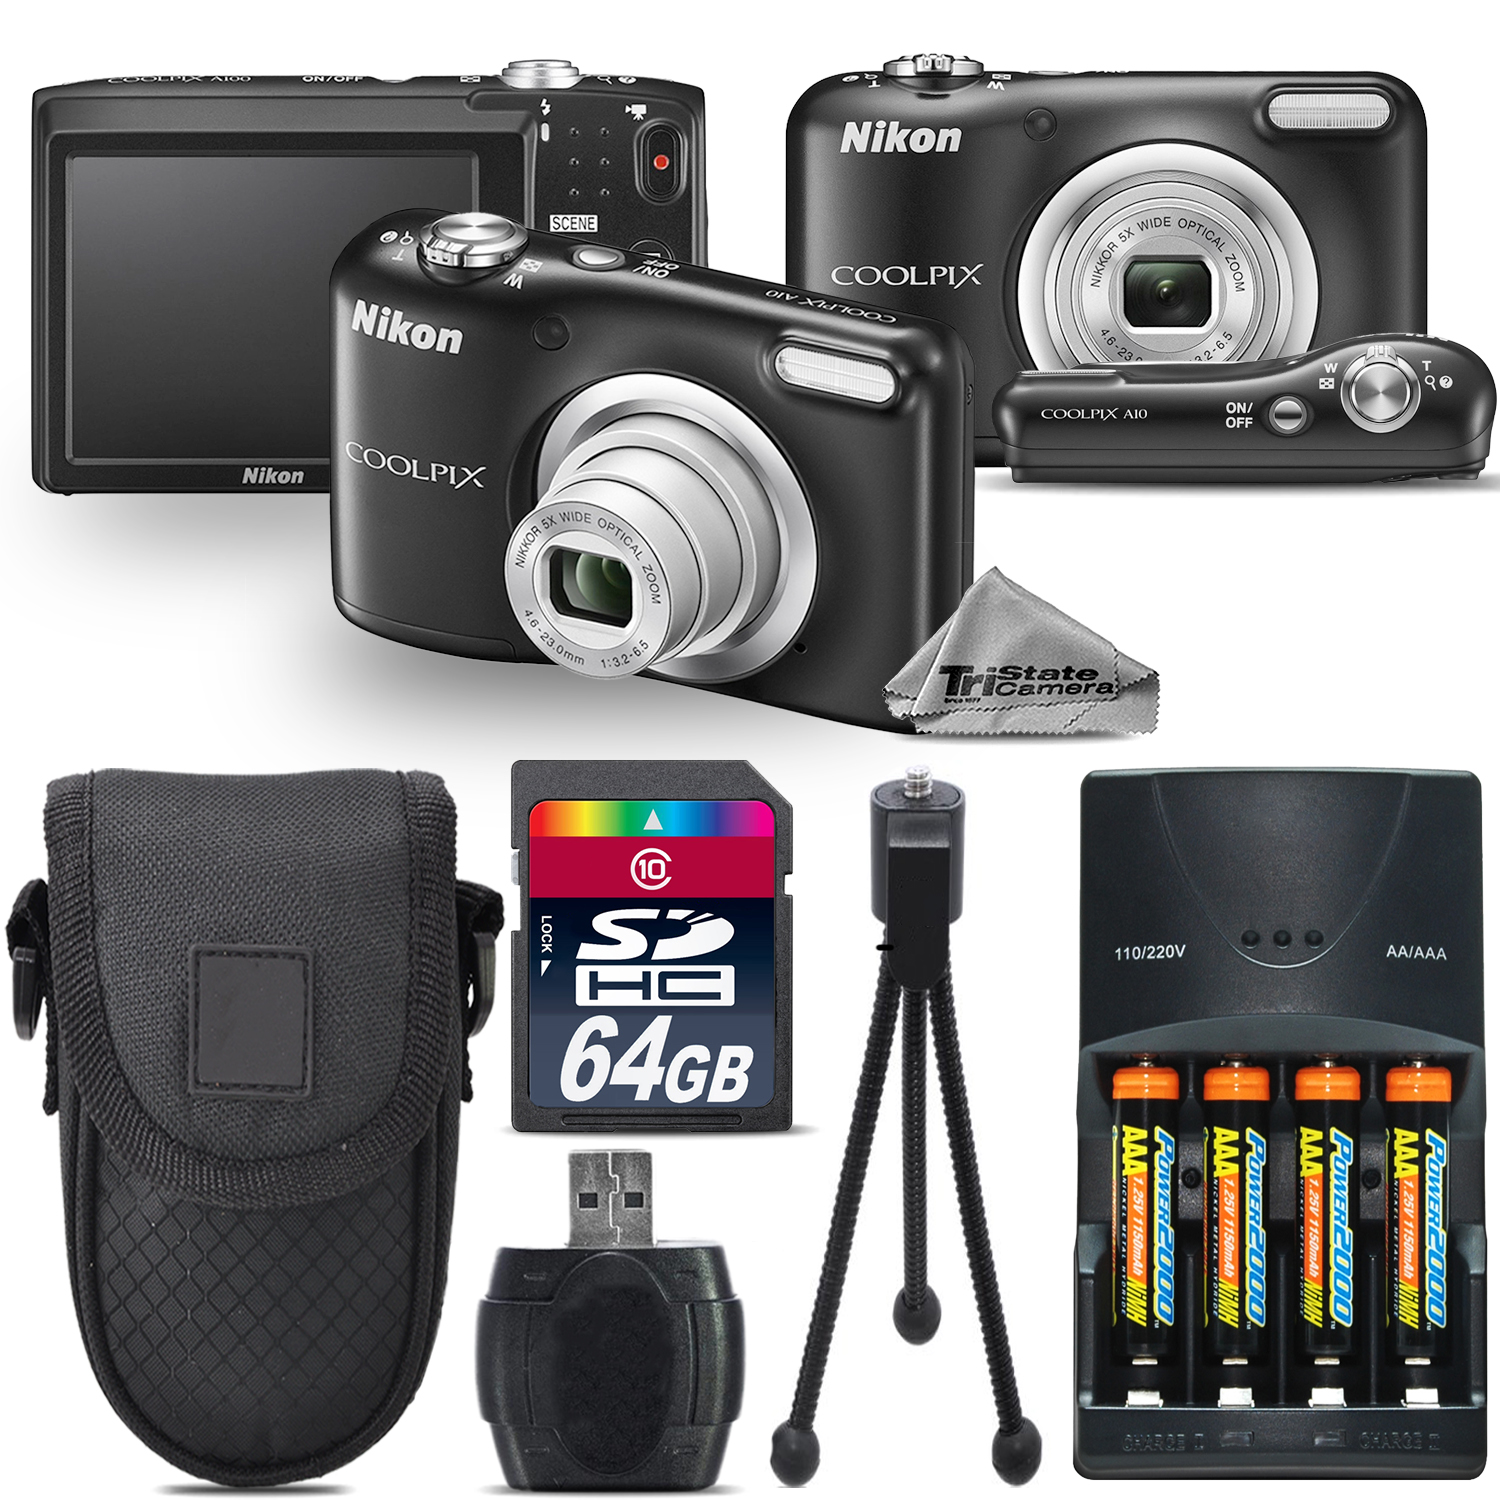 Nikon Coolpix A10 16.1MP Digital Camera (Black) 5x Optica...